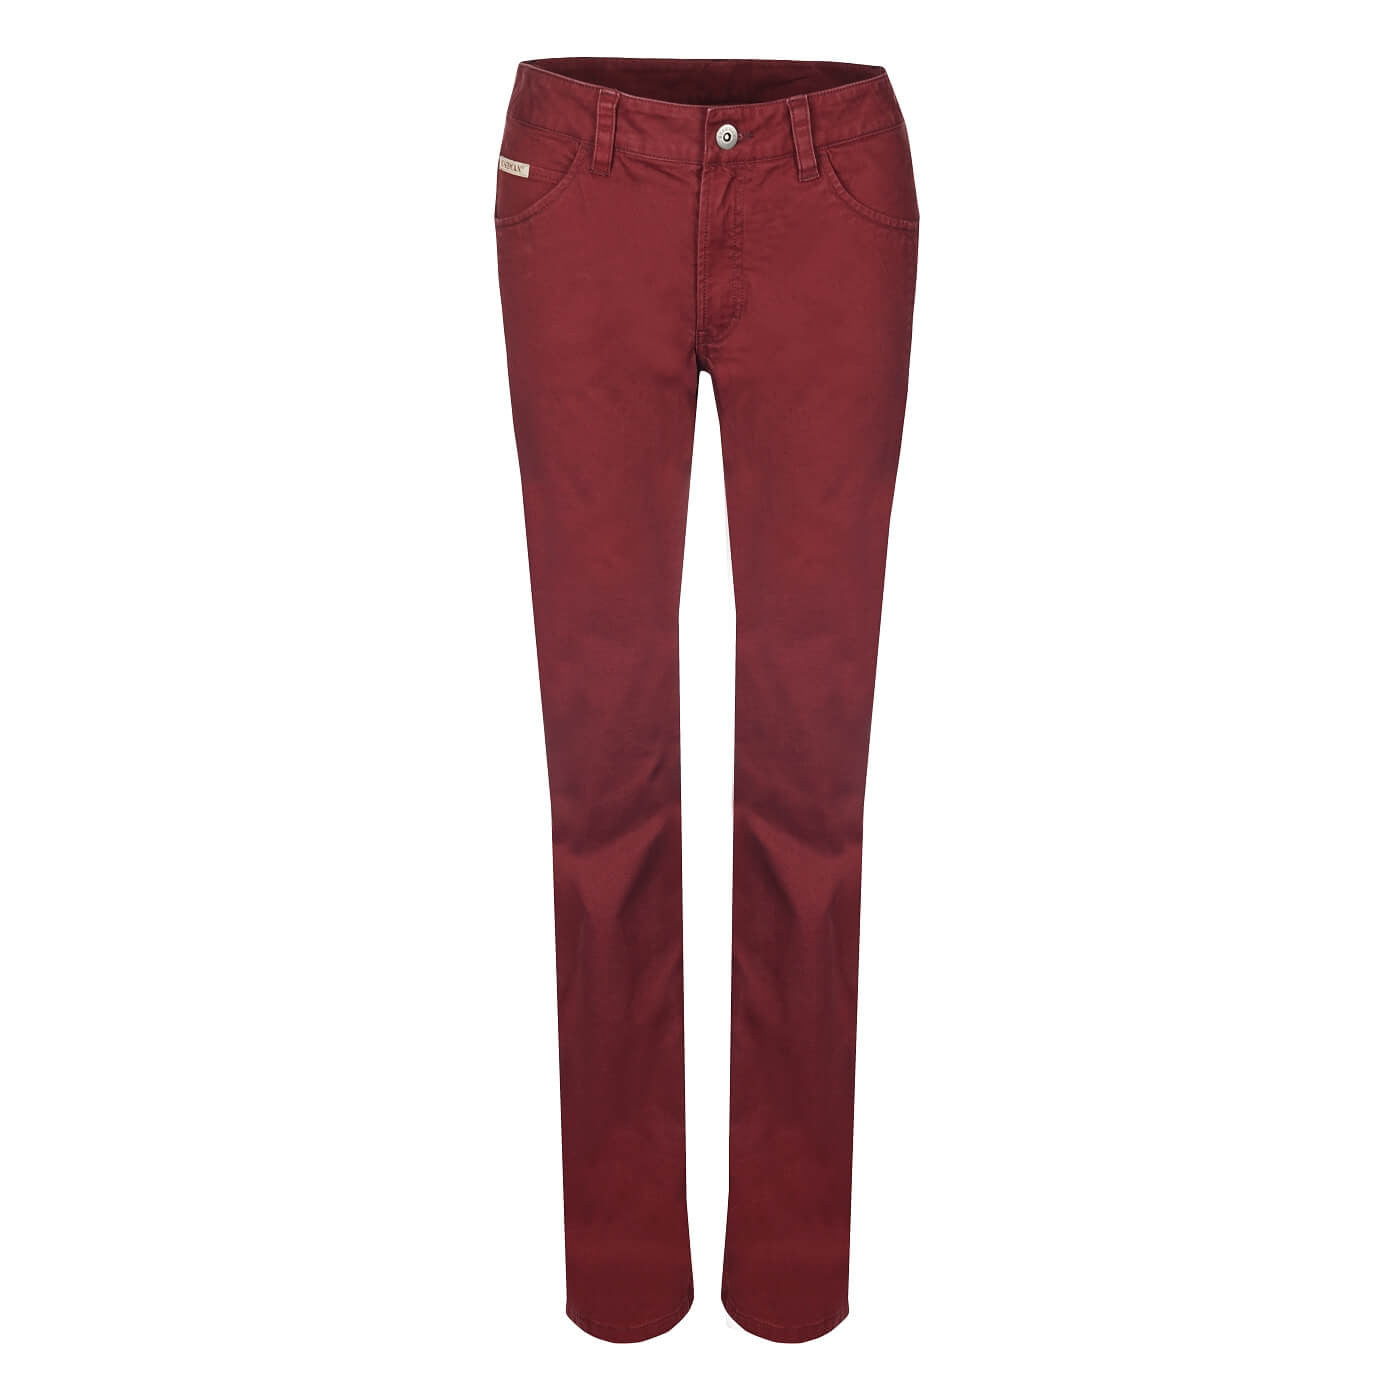 BUSHMANSHOP FLORESTA WOMEN'S RED GREY JEANS PANTS